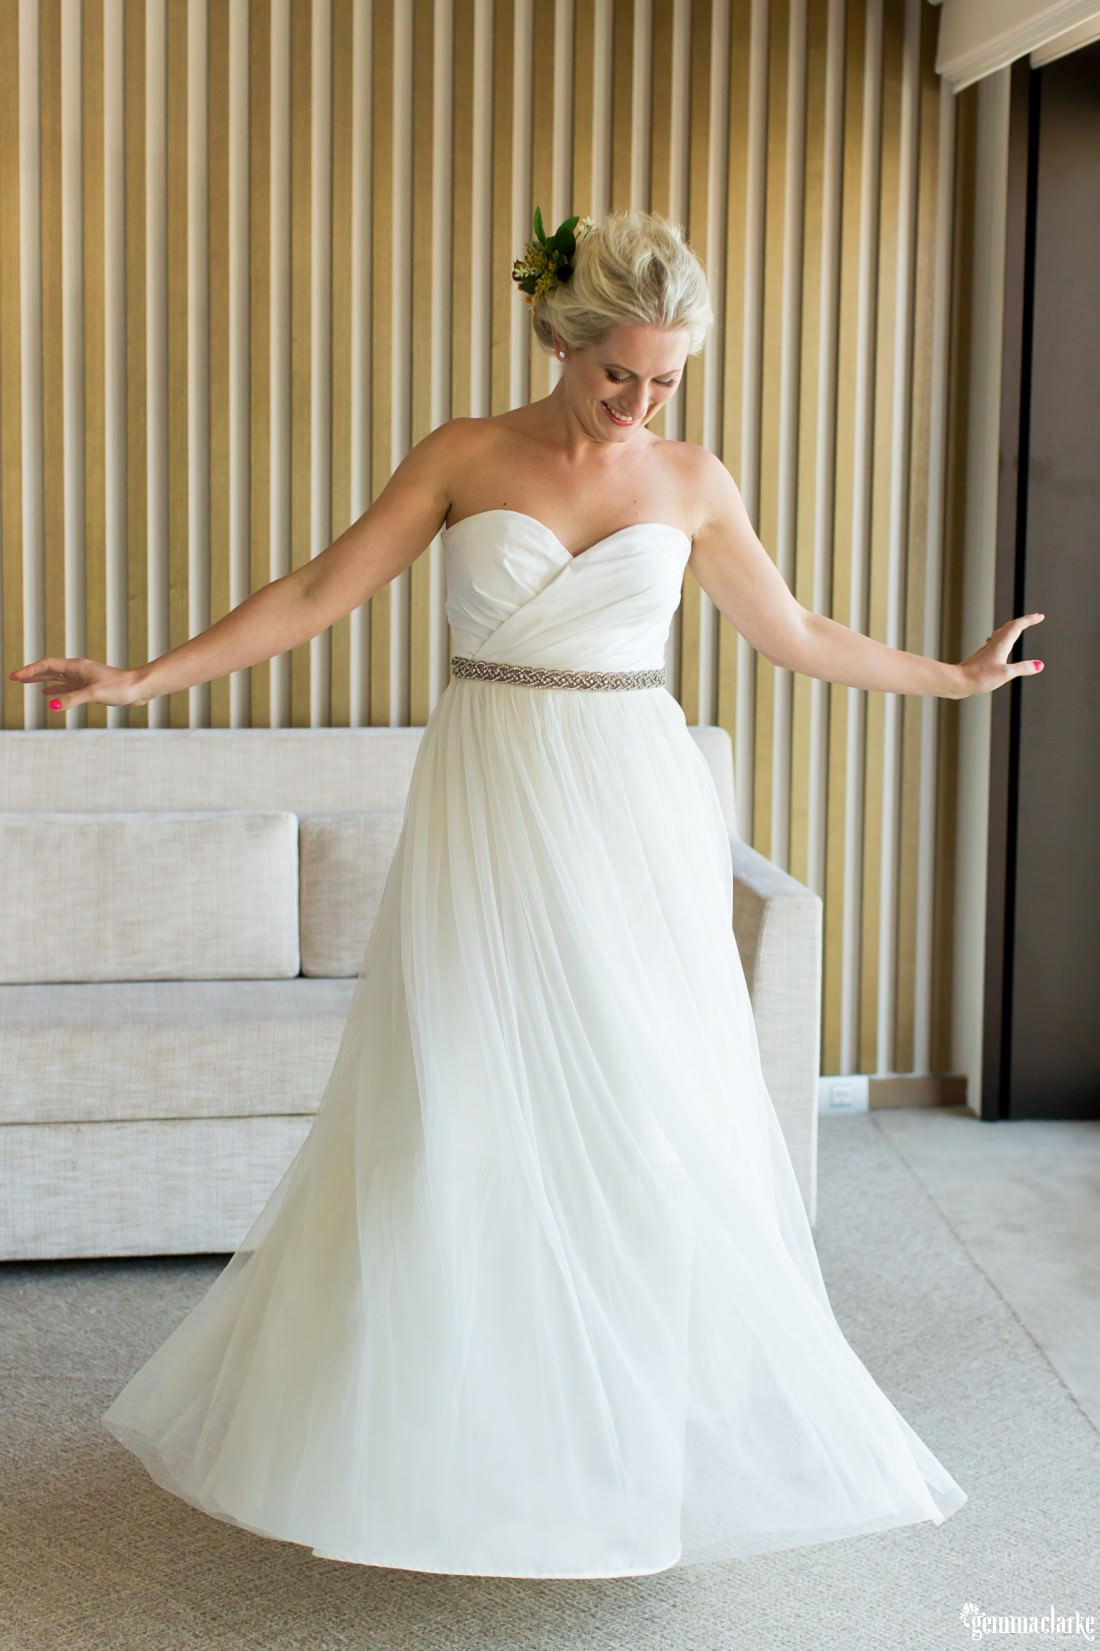 A bride twirling her wedding gown